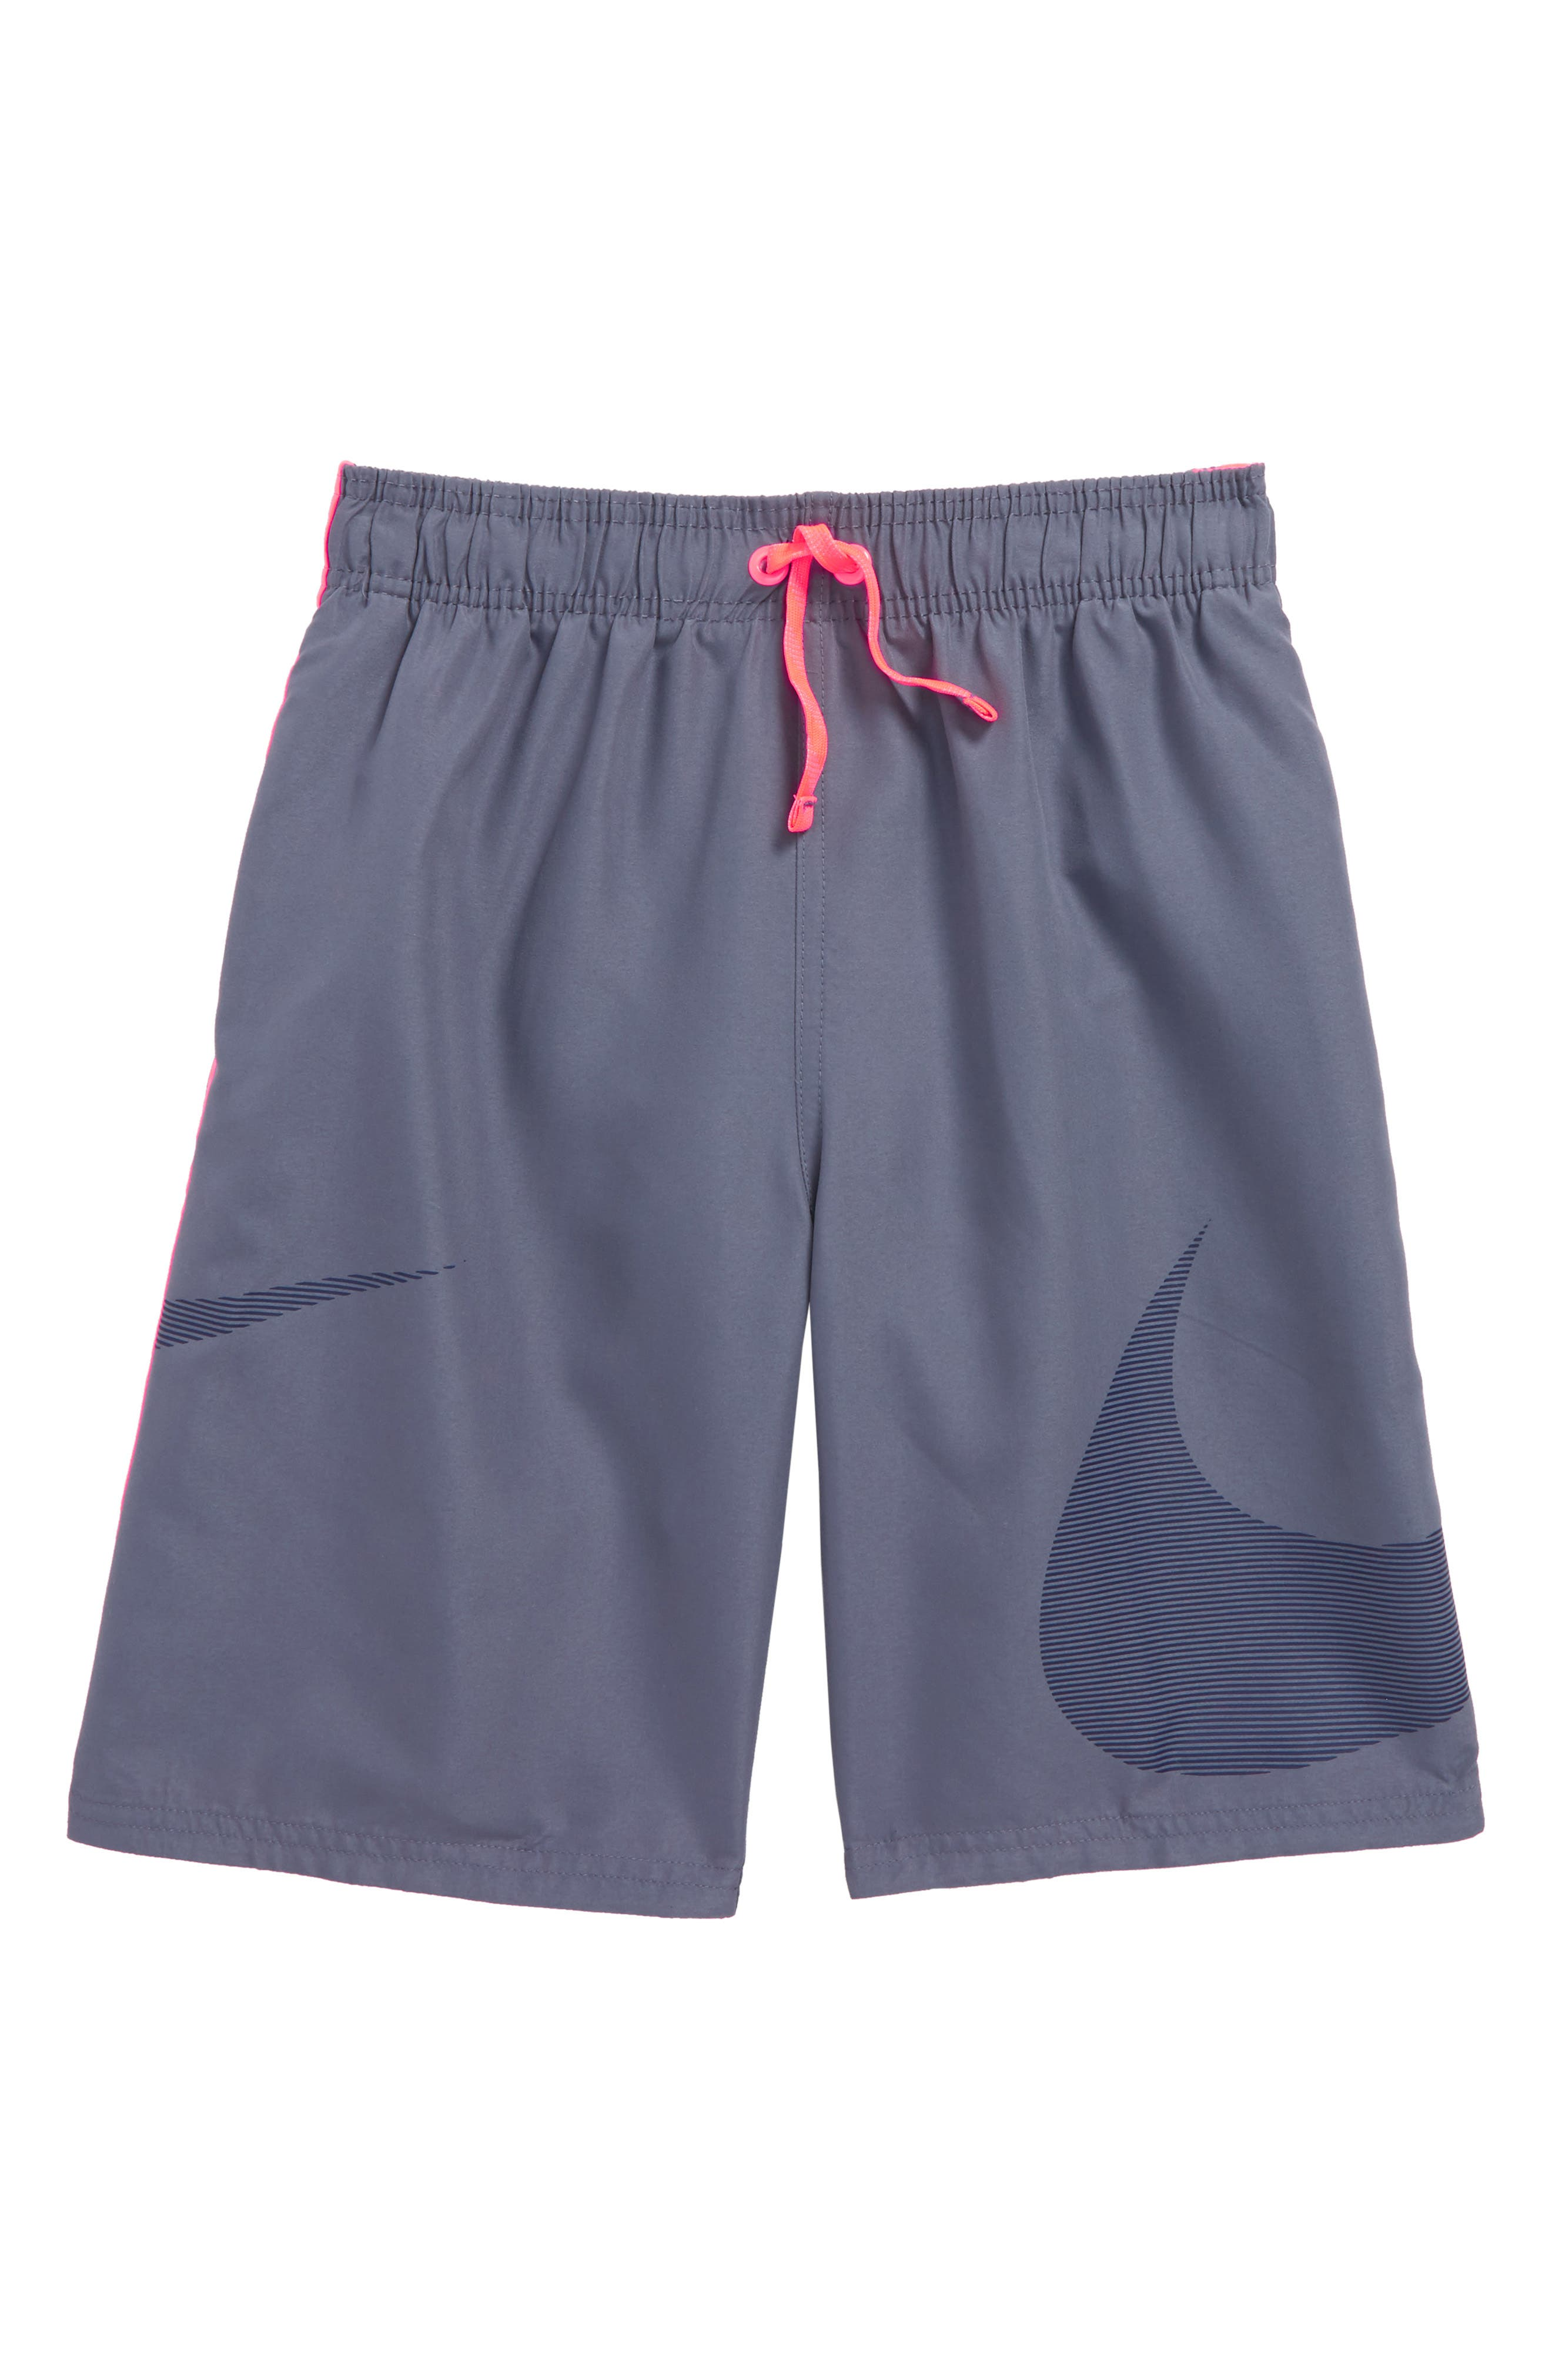 Diverge Volley Shorts,                         Main,                         color, 020